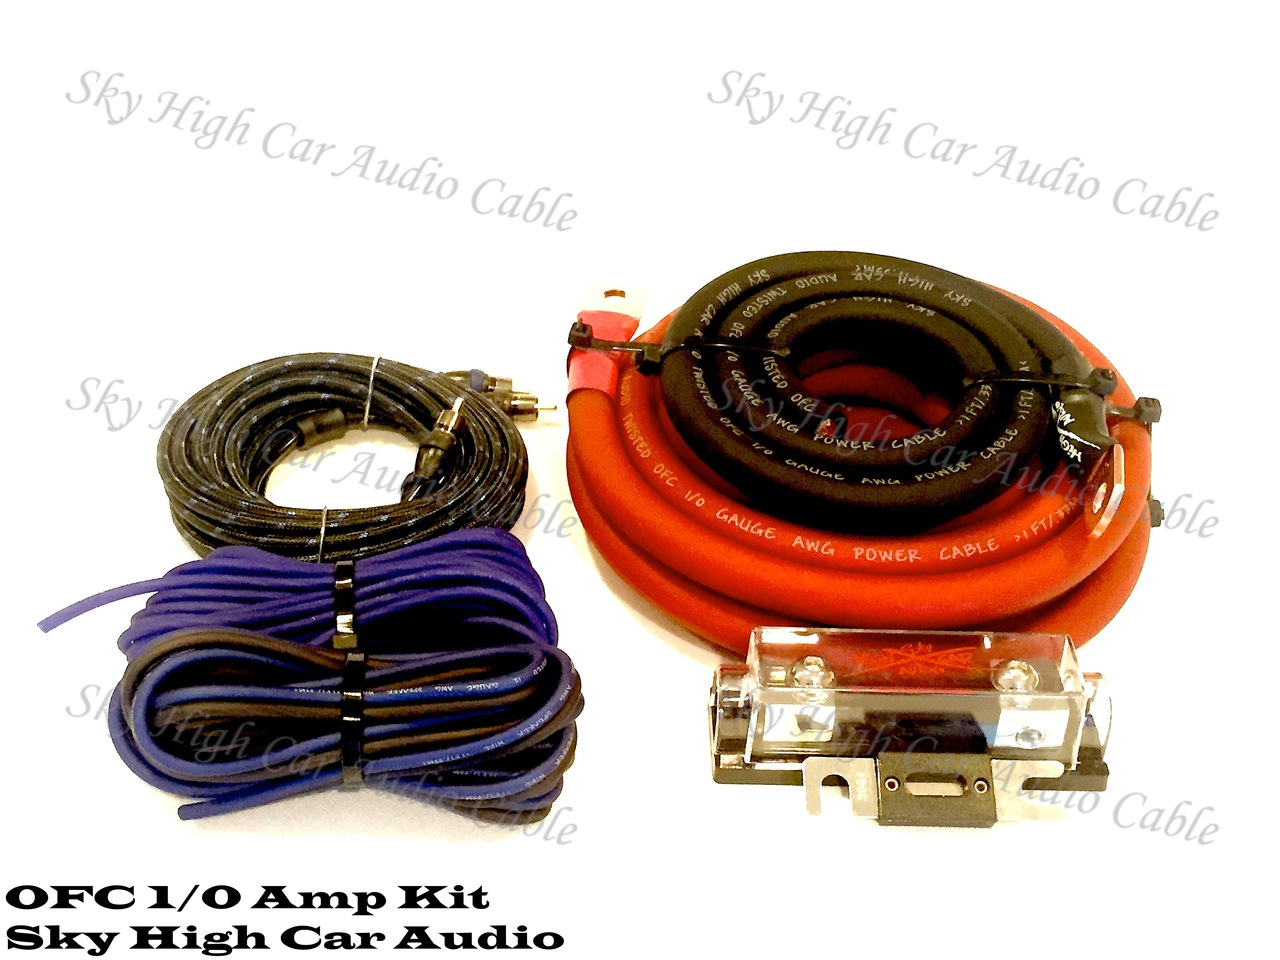 Sky High Car Audio 1 0 Ofc Amp Kit Amplifier Wiring